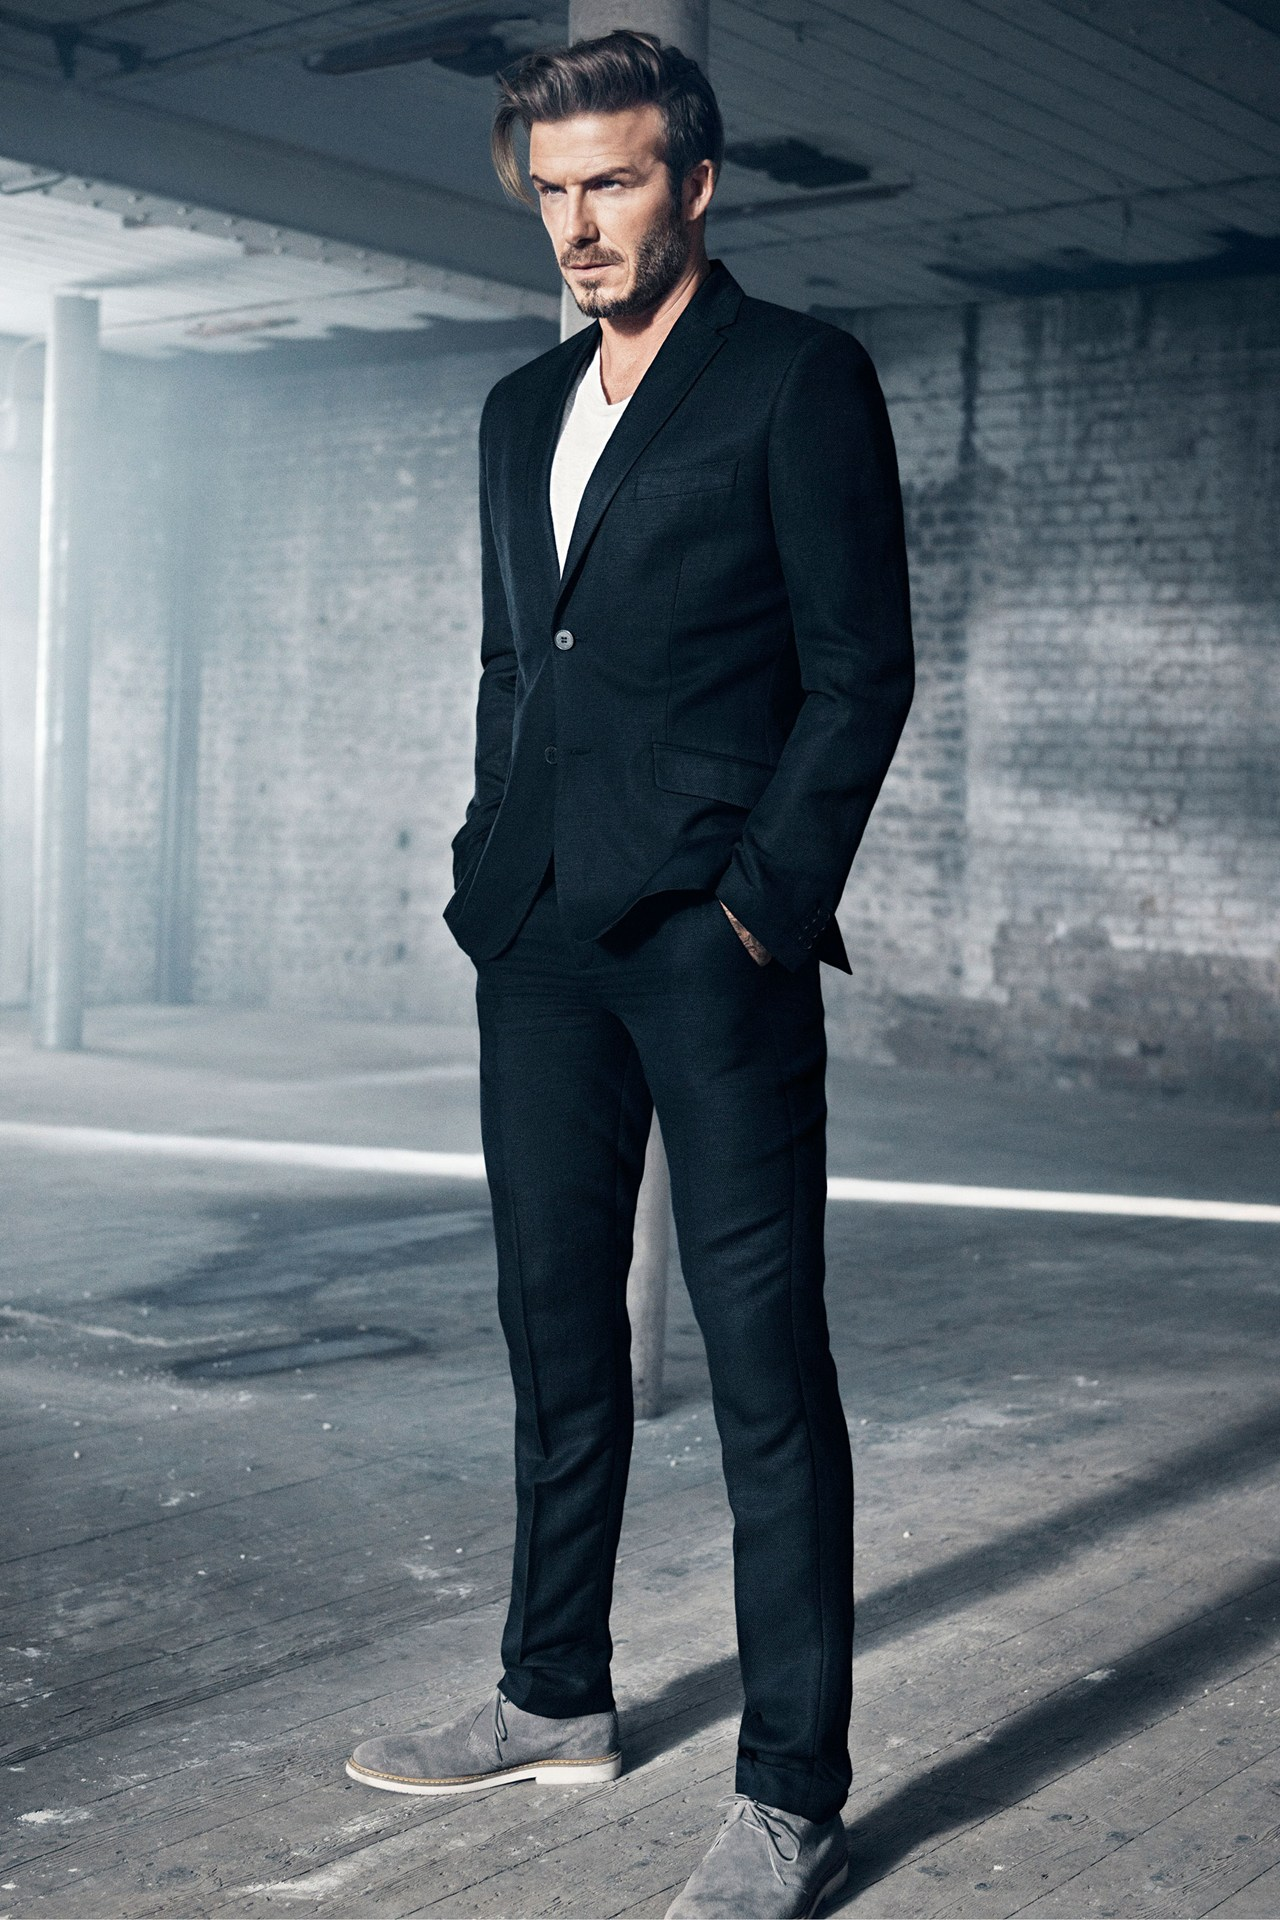 David-Beckham-HM-11-Vogue 20Jan15 pr_b_1280x1920